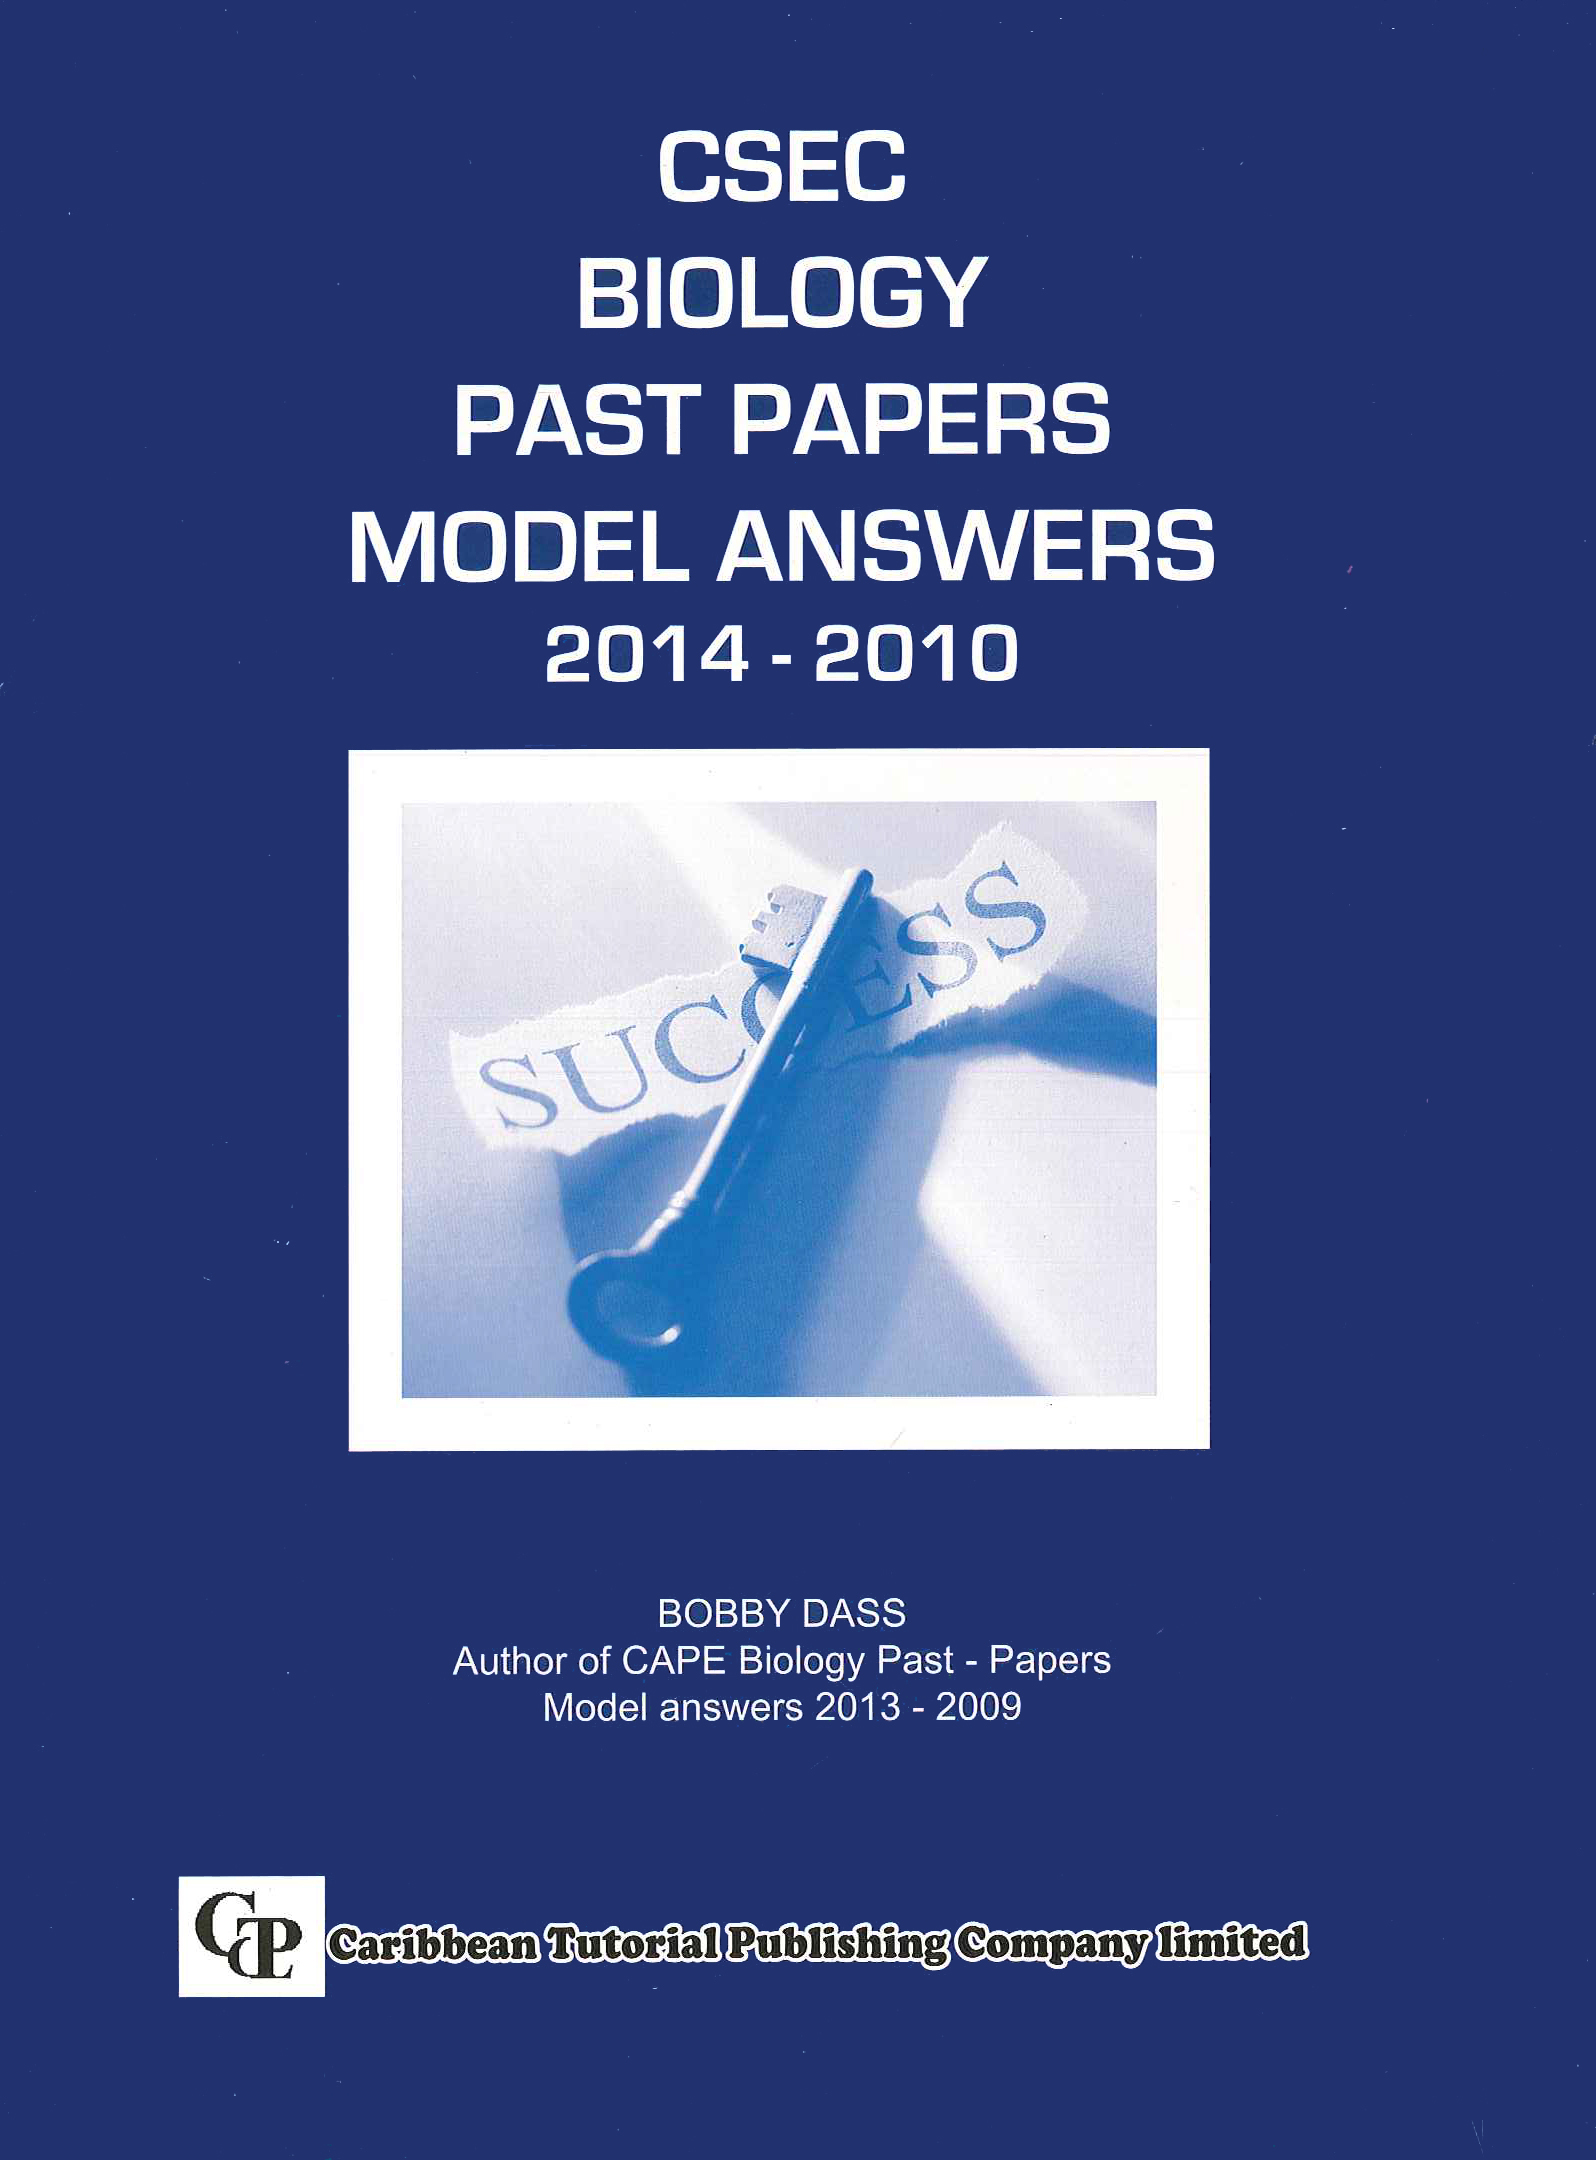 CSEC Biology Past Papers Model Answers 2014-2010 - Caribbean